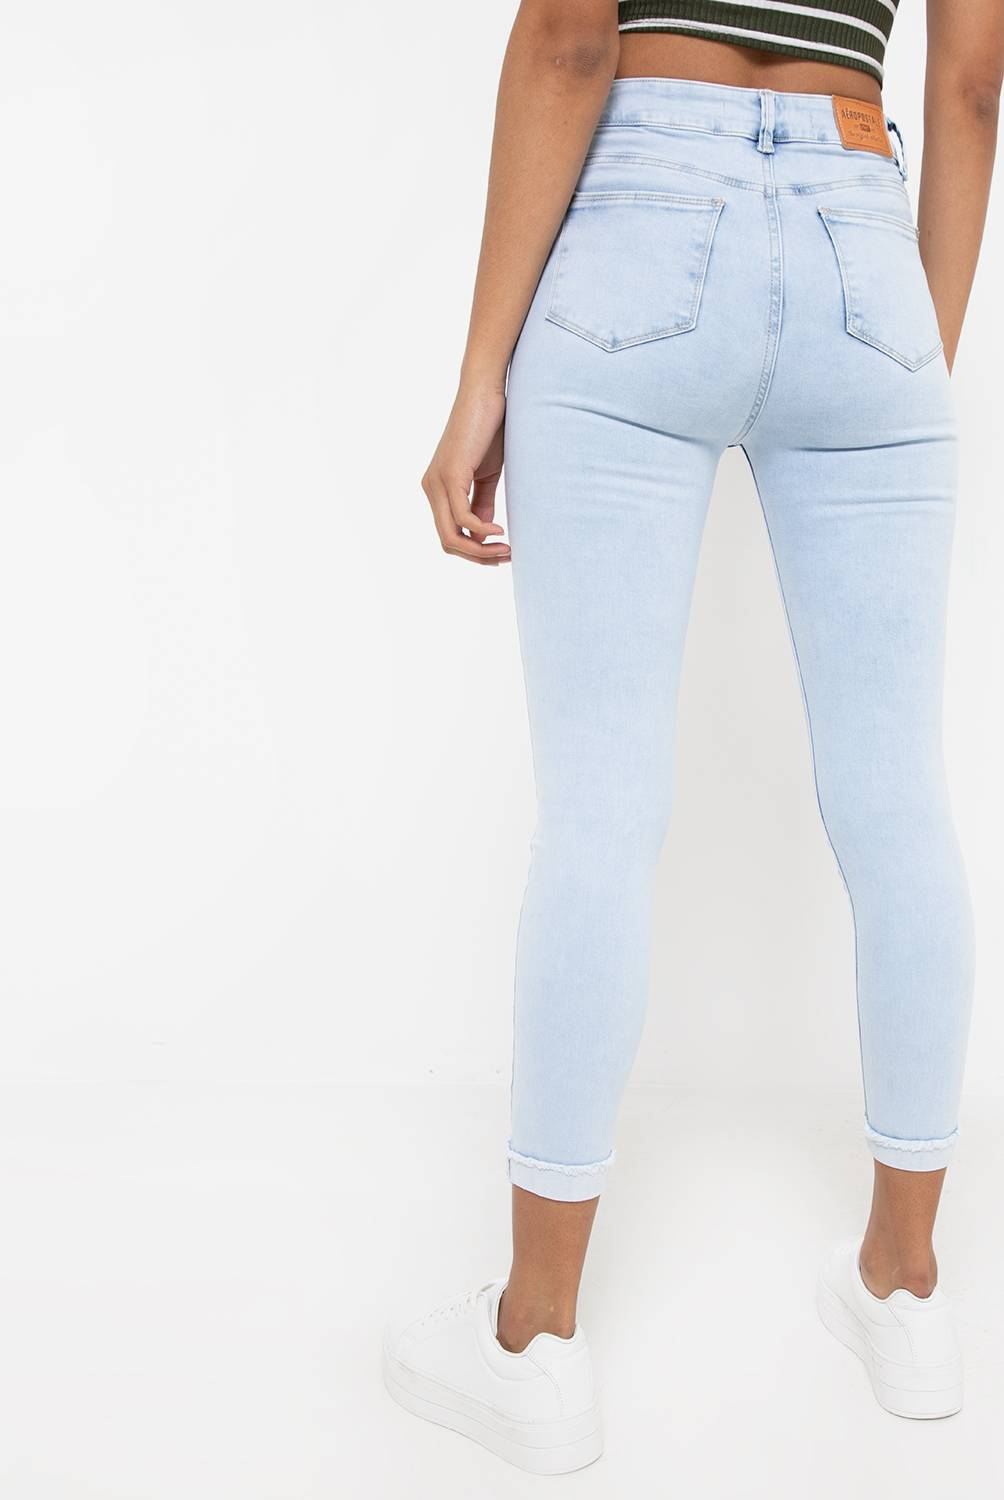 AEROPOSTALE - Jean Roll Up Mujer